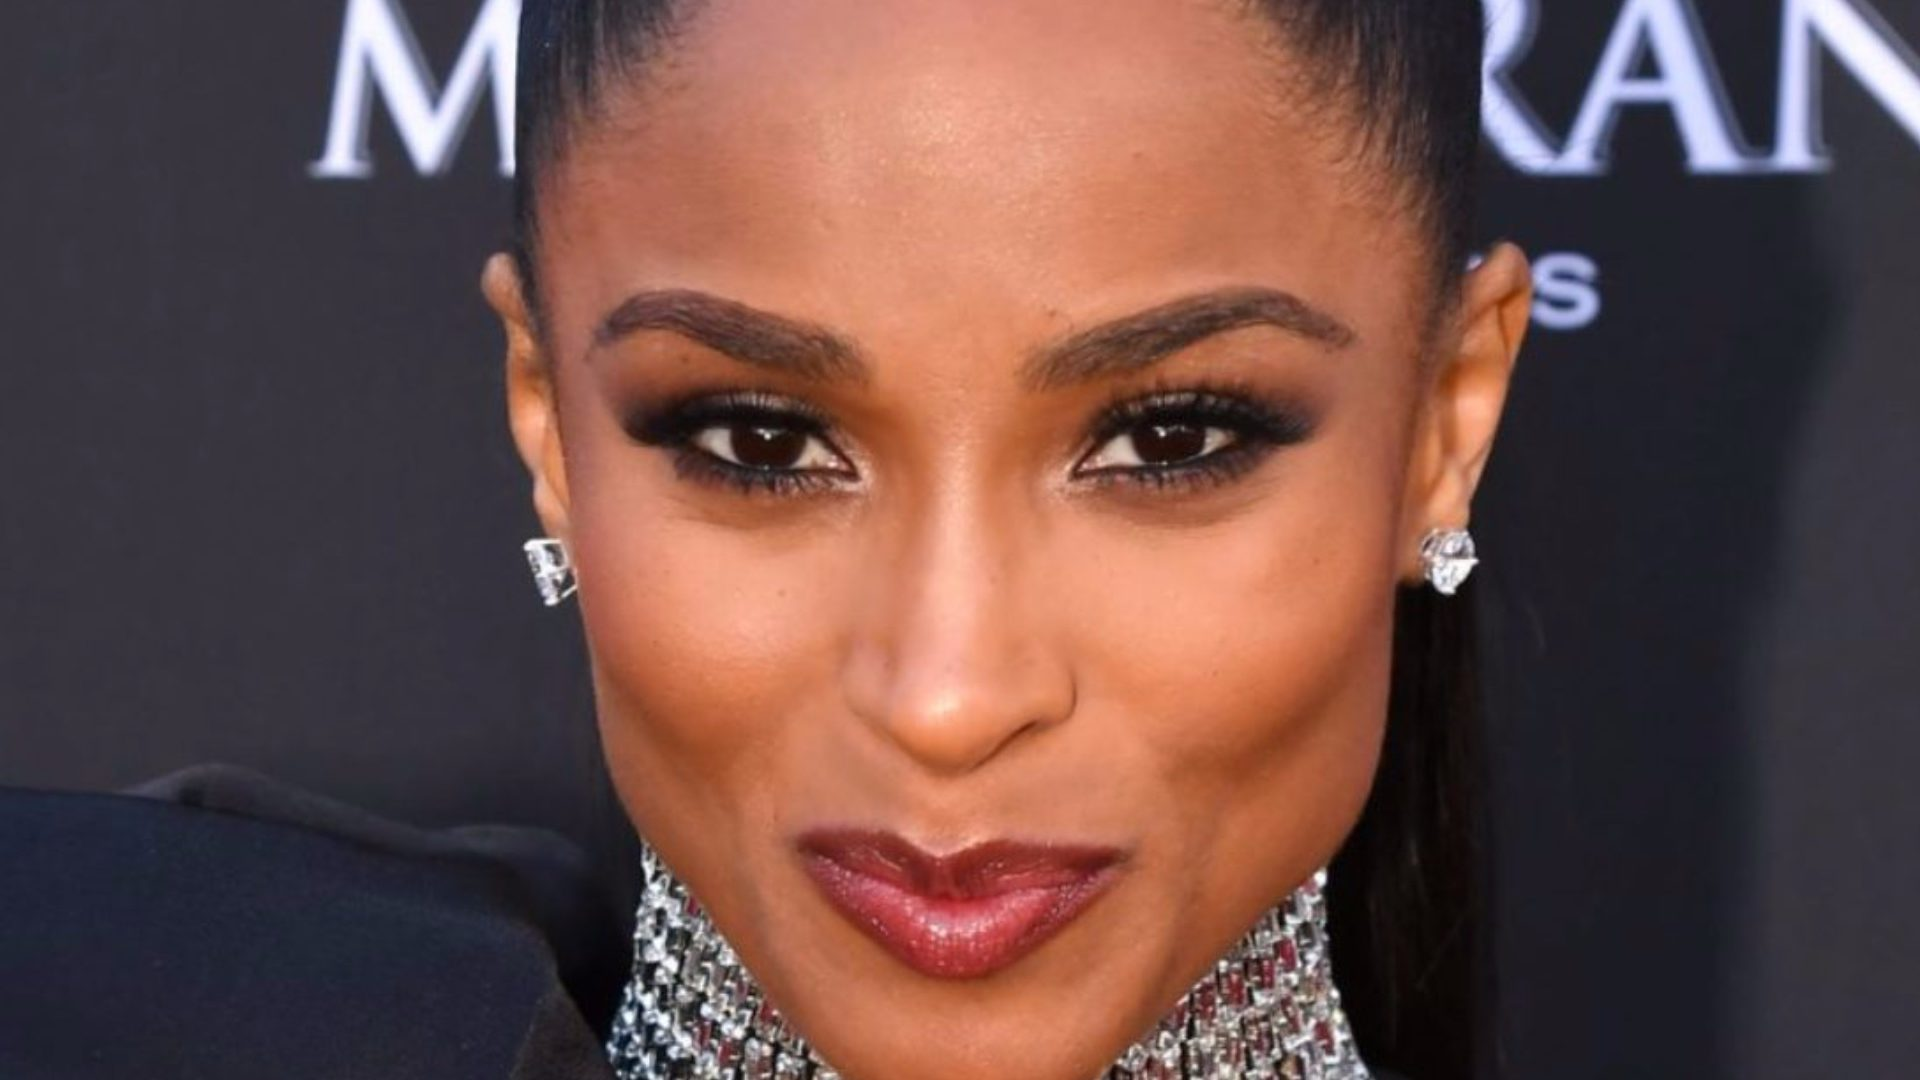 Ciara Has A New Haircut And You Have To See It Before It's Gone